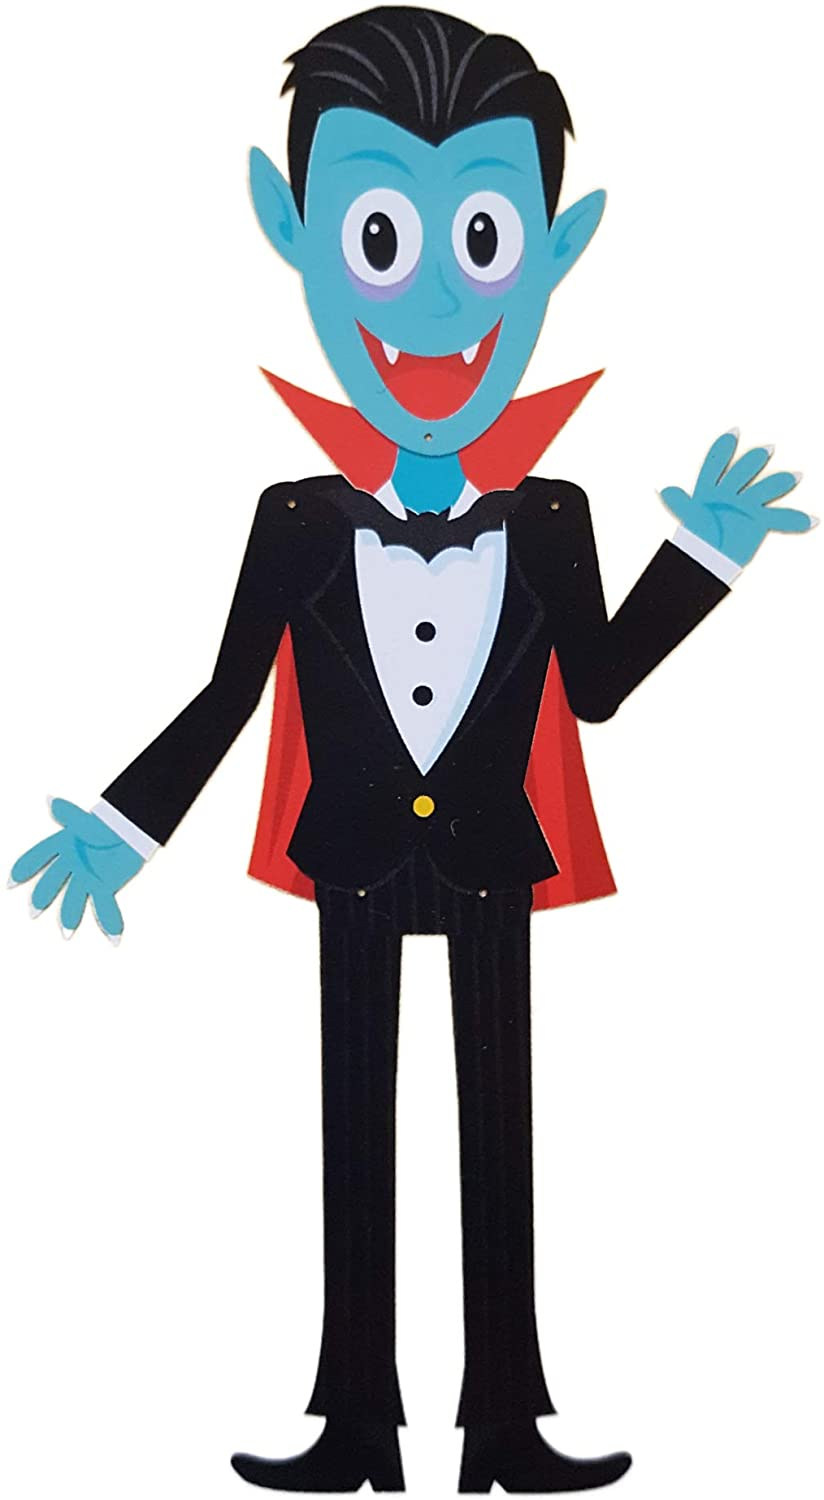 Halloween Party Decoration Jointed Cutout Character Figure Door Wall Decor 36 Inch (Dracula Vampire)